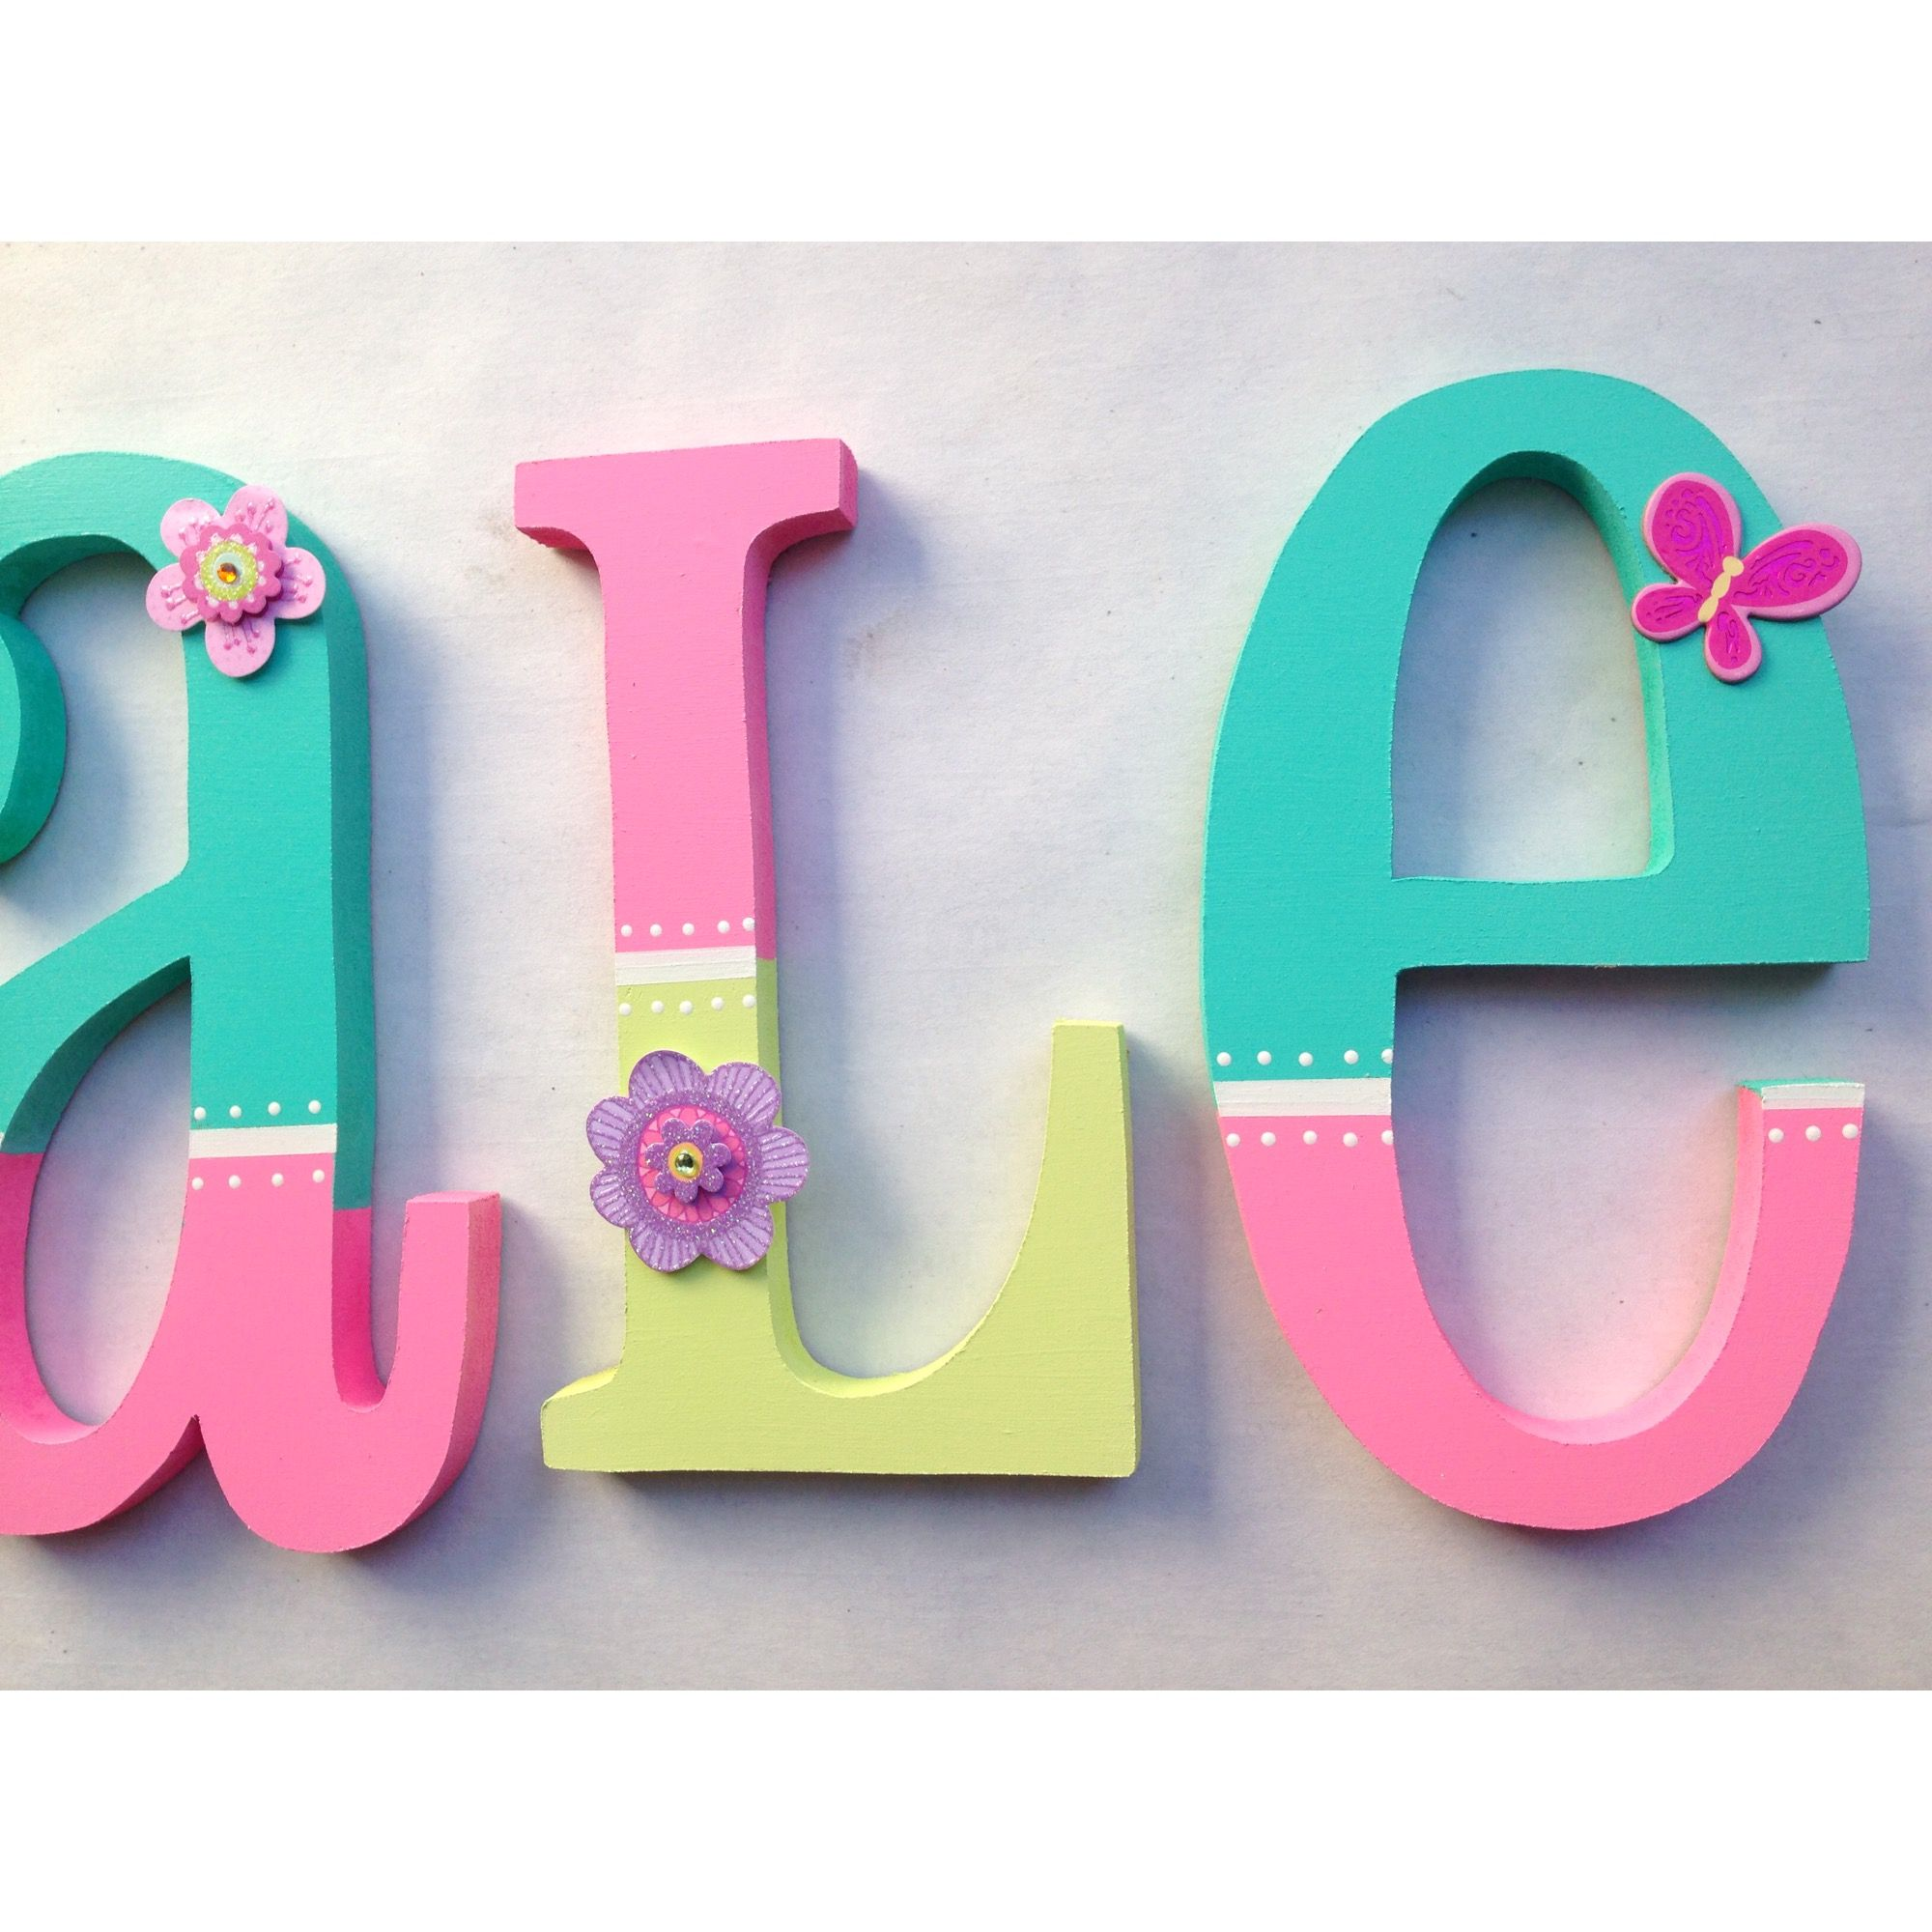 Ideas Para Decorar Letras De Madera Nursery Decor Letters / Letras De Madera Para Decorar ! On